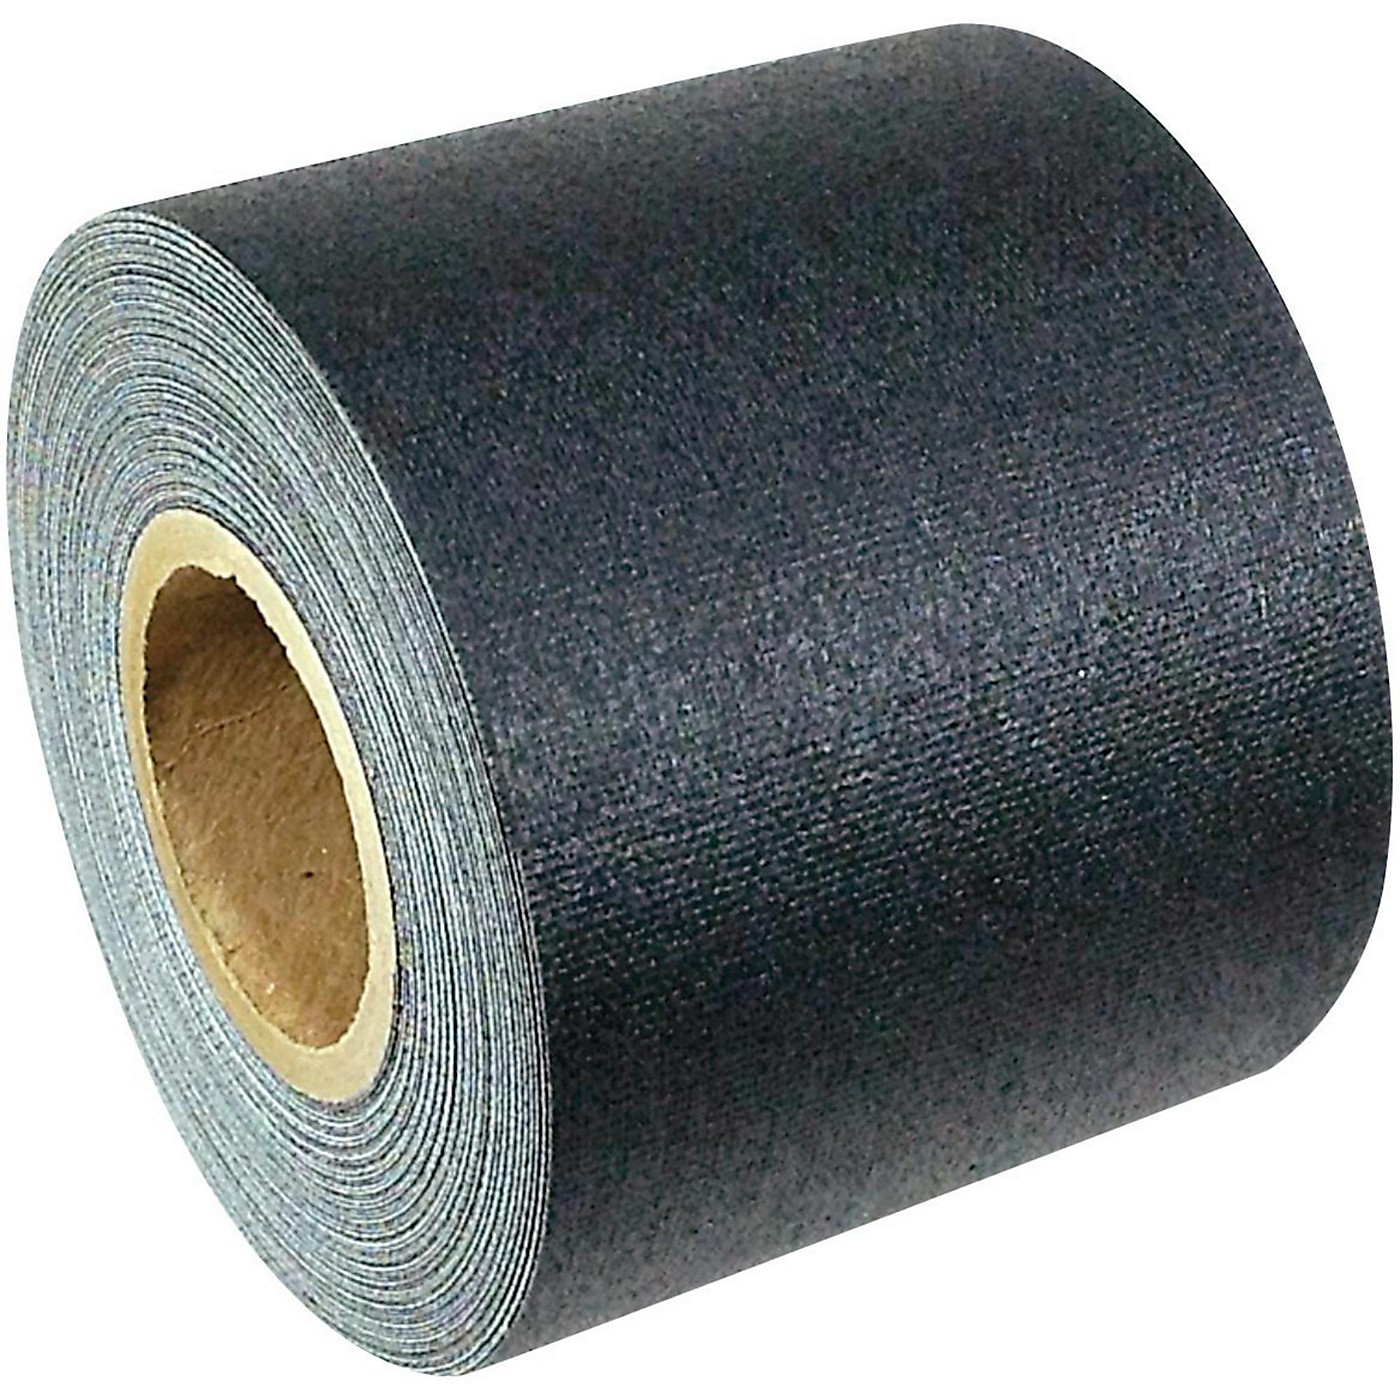 American Recorder Technologies Mini Roll Gaffers Tape 2 In x 8 Yards Basic Colors thumbnail